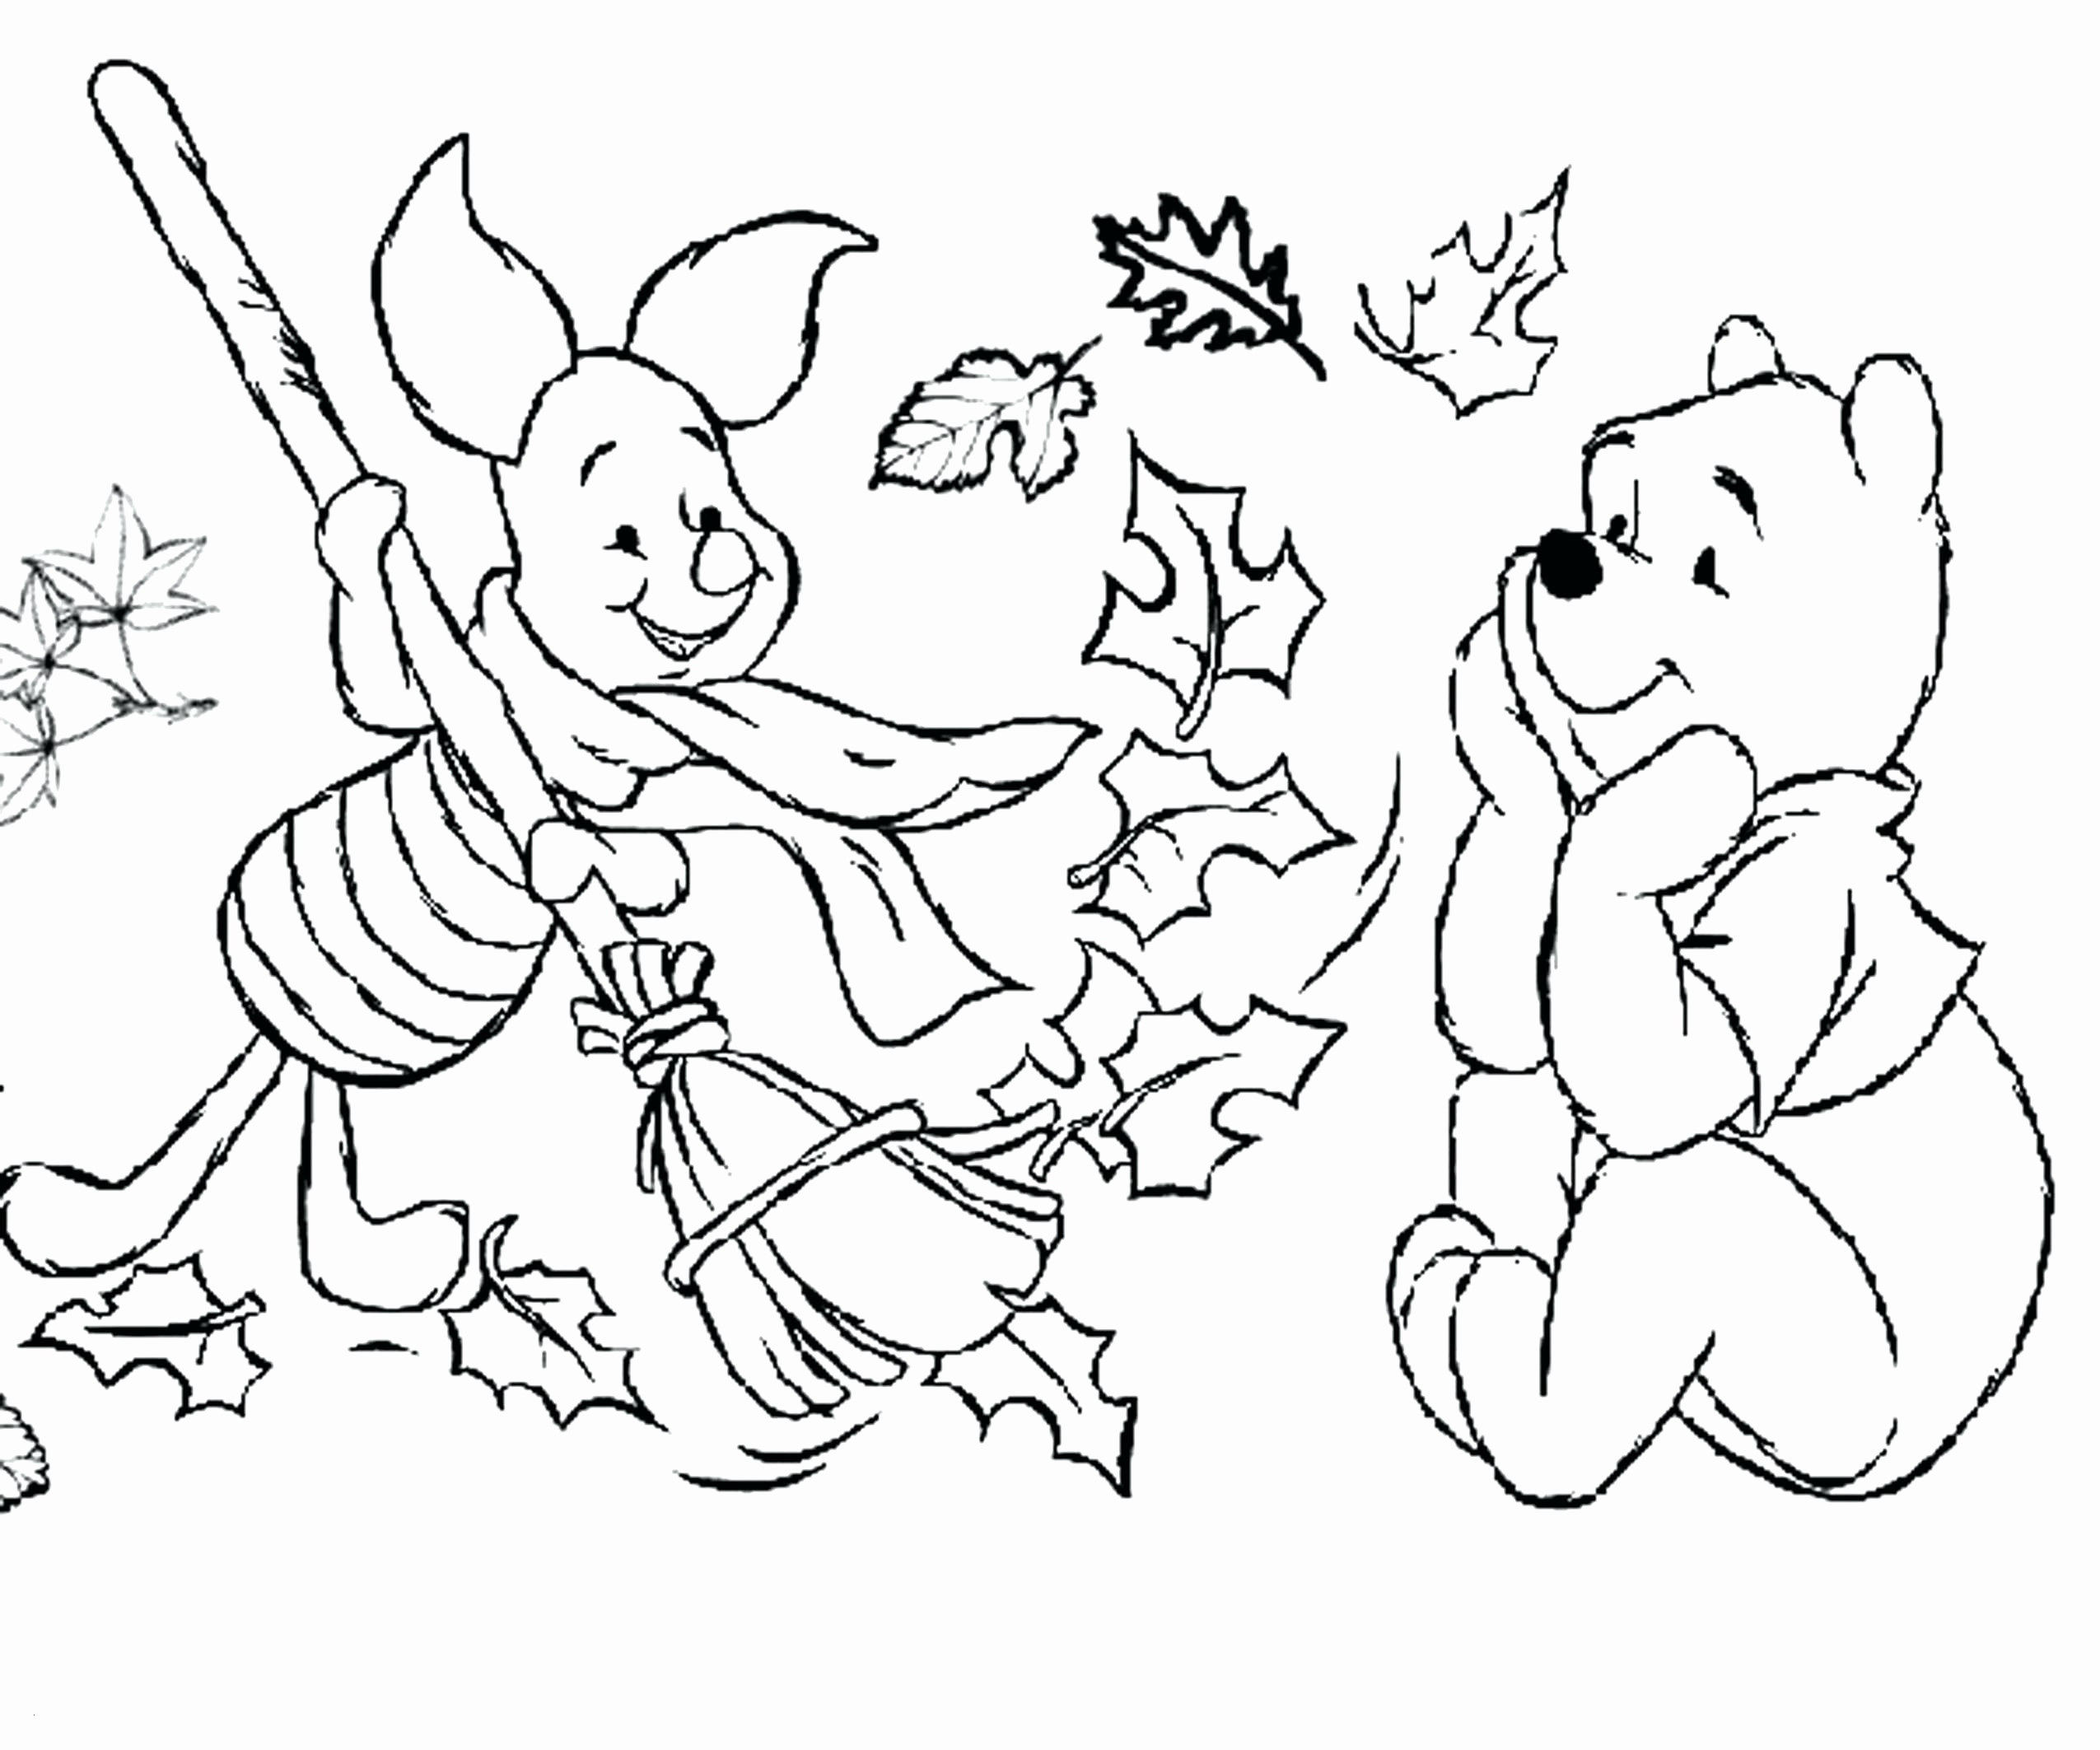 bullying coloring pages Download-Japanese Coloring Pages Ninja Coloring Pages Amazing Fall Coloring Free Printable Verikira 12-j